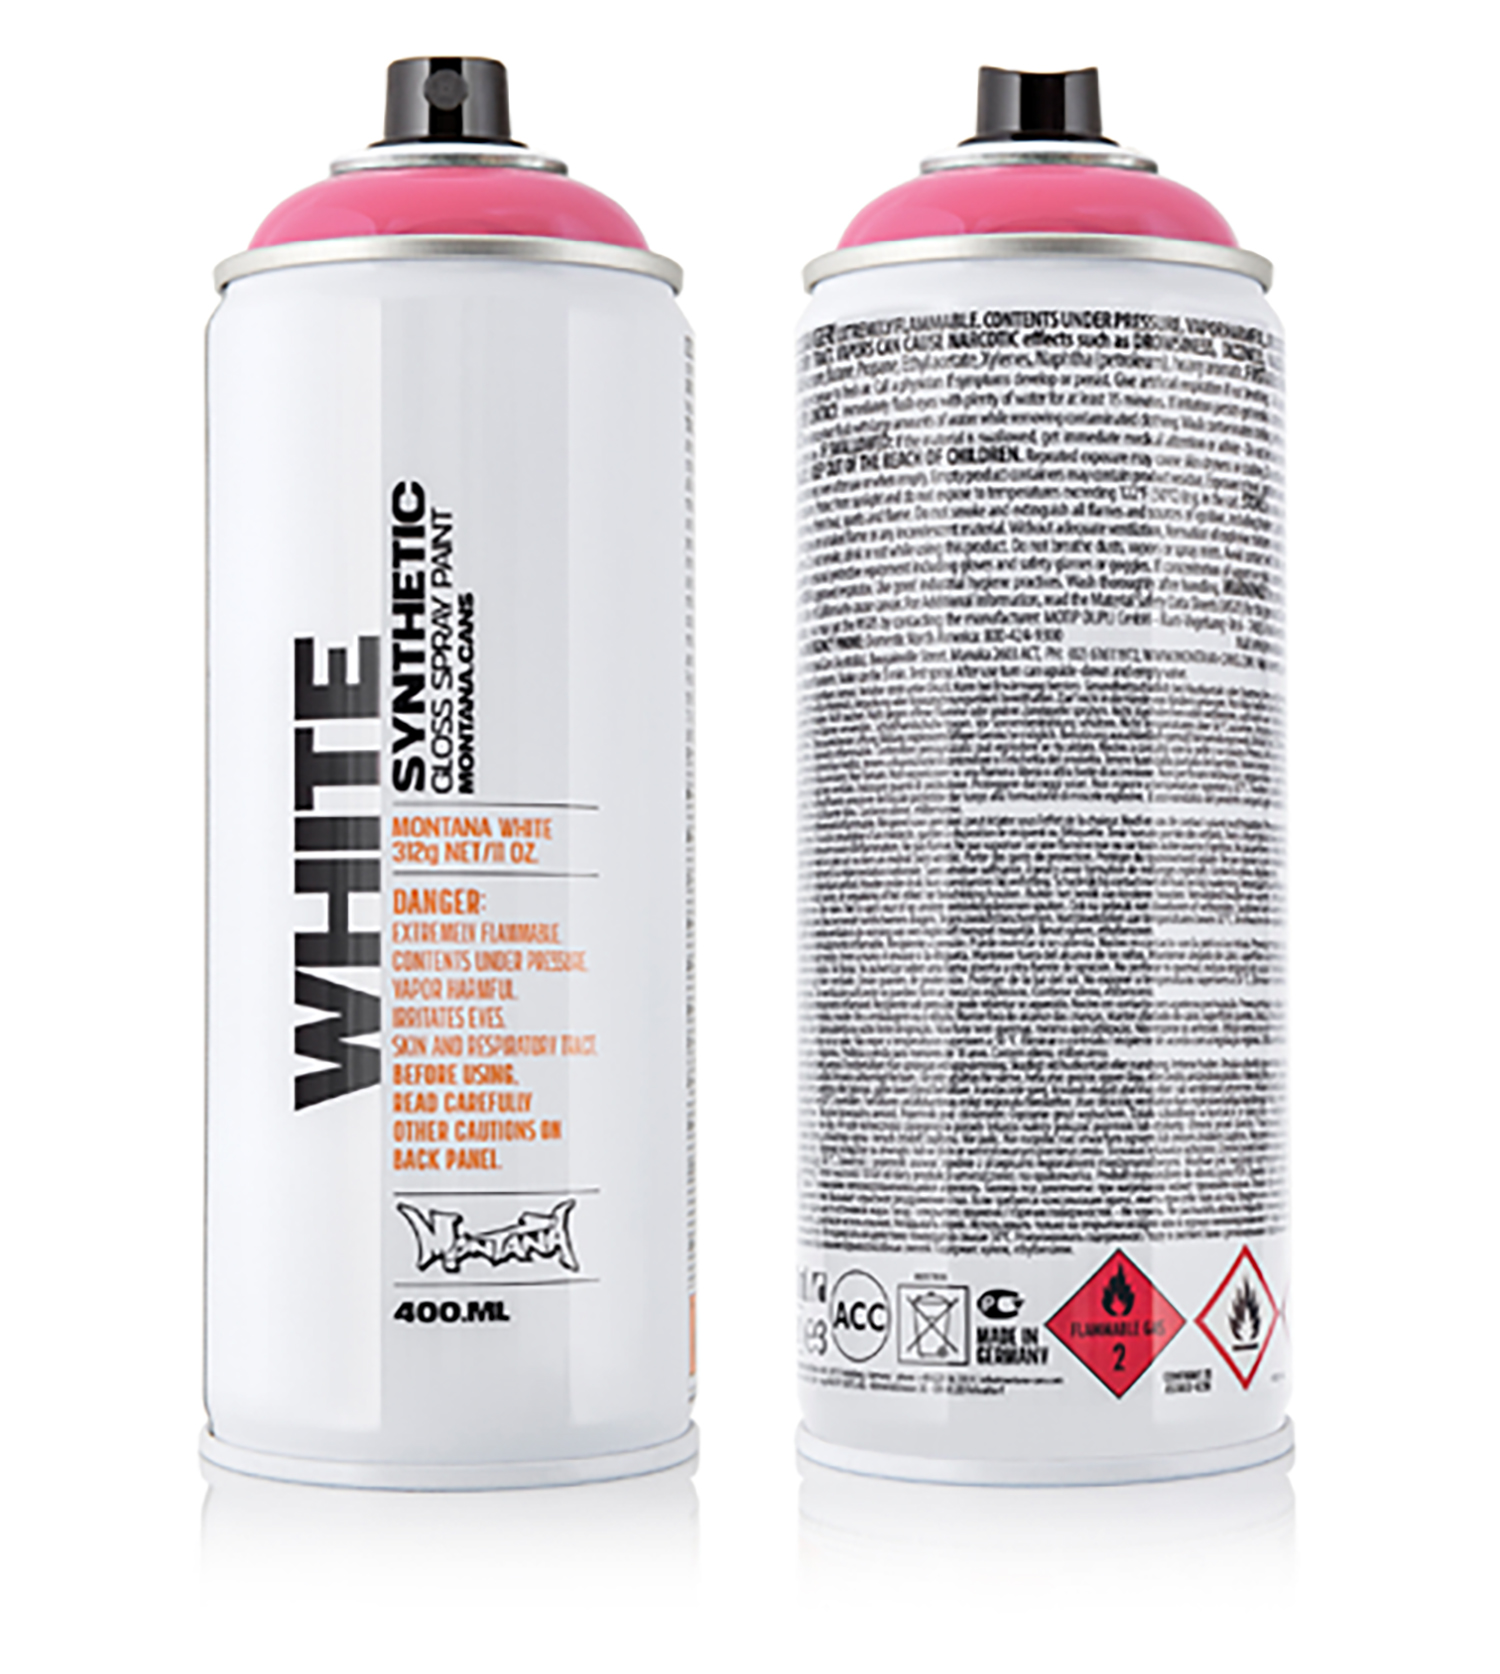 MONTANA-WHITE-SPRAY-400ML-3320